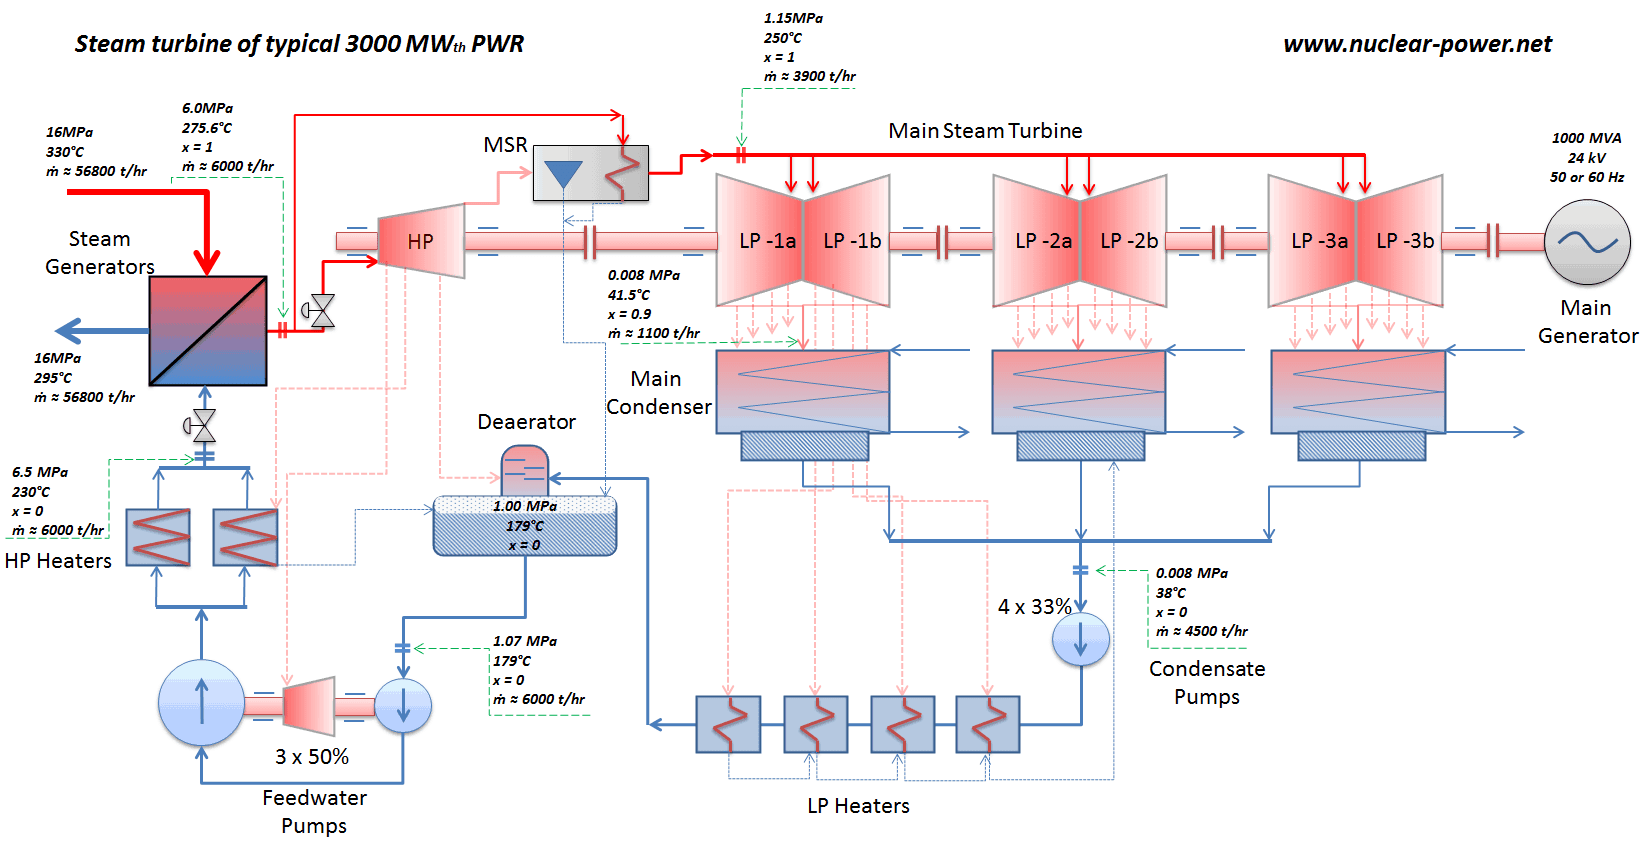 hight resolution of schema of a steam turbine of a typical 3000mwth pwr